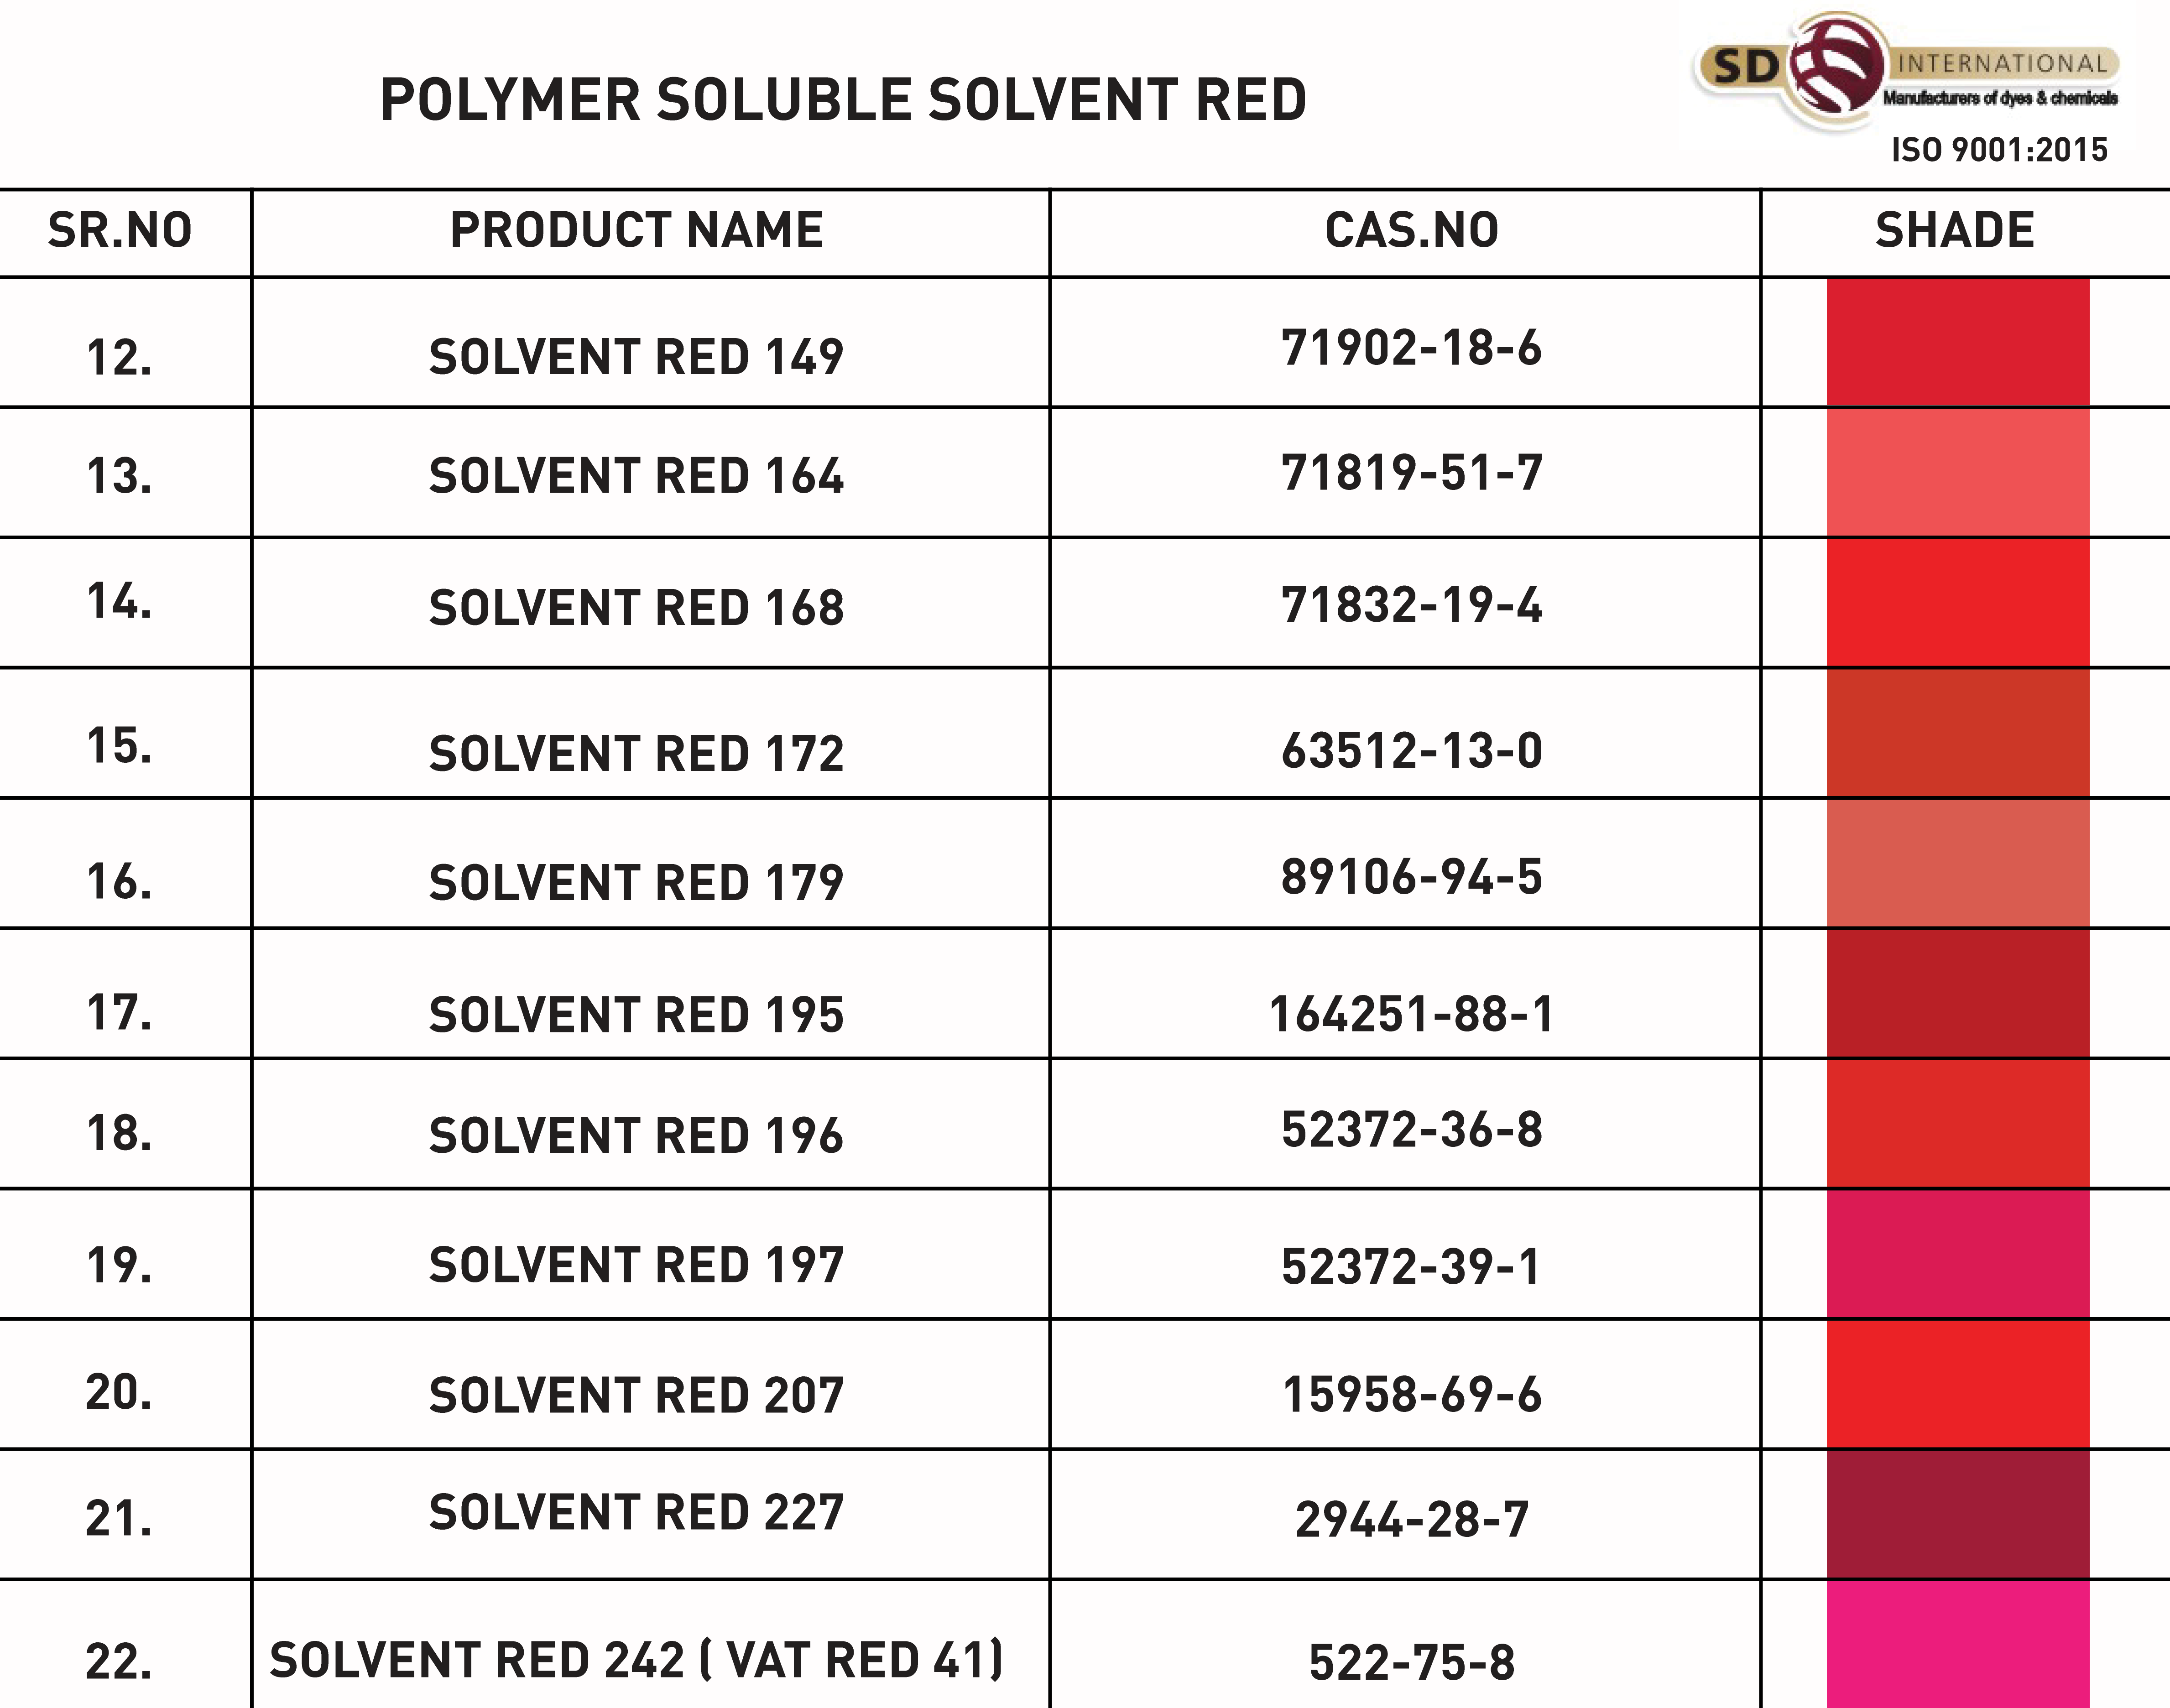 Solvent Yellow 2 Dyes